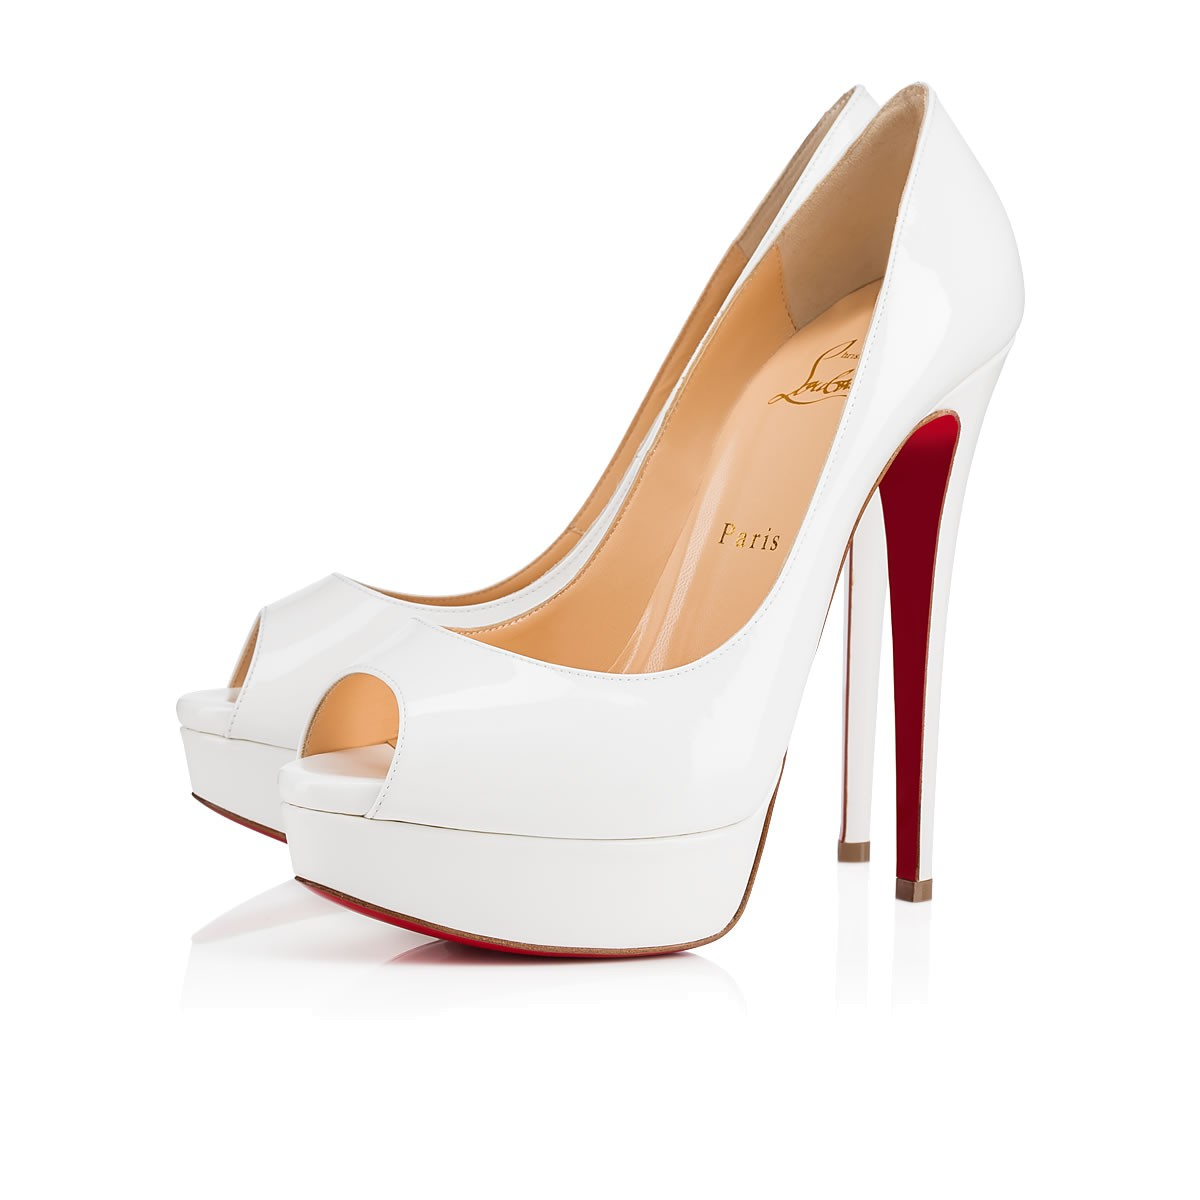 Christian Louboutin Fetish Peep In Latte